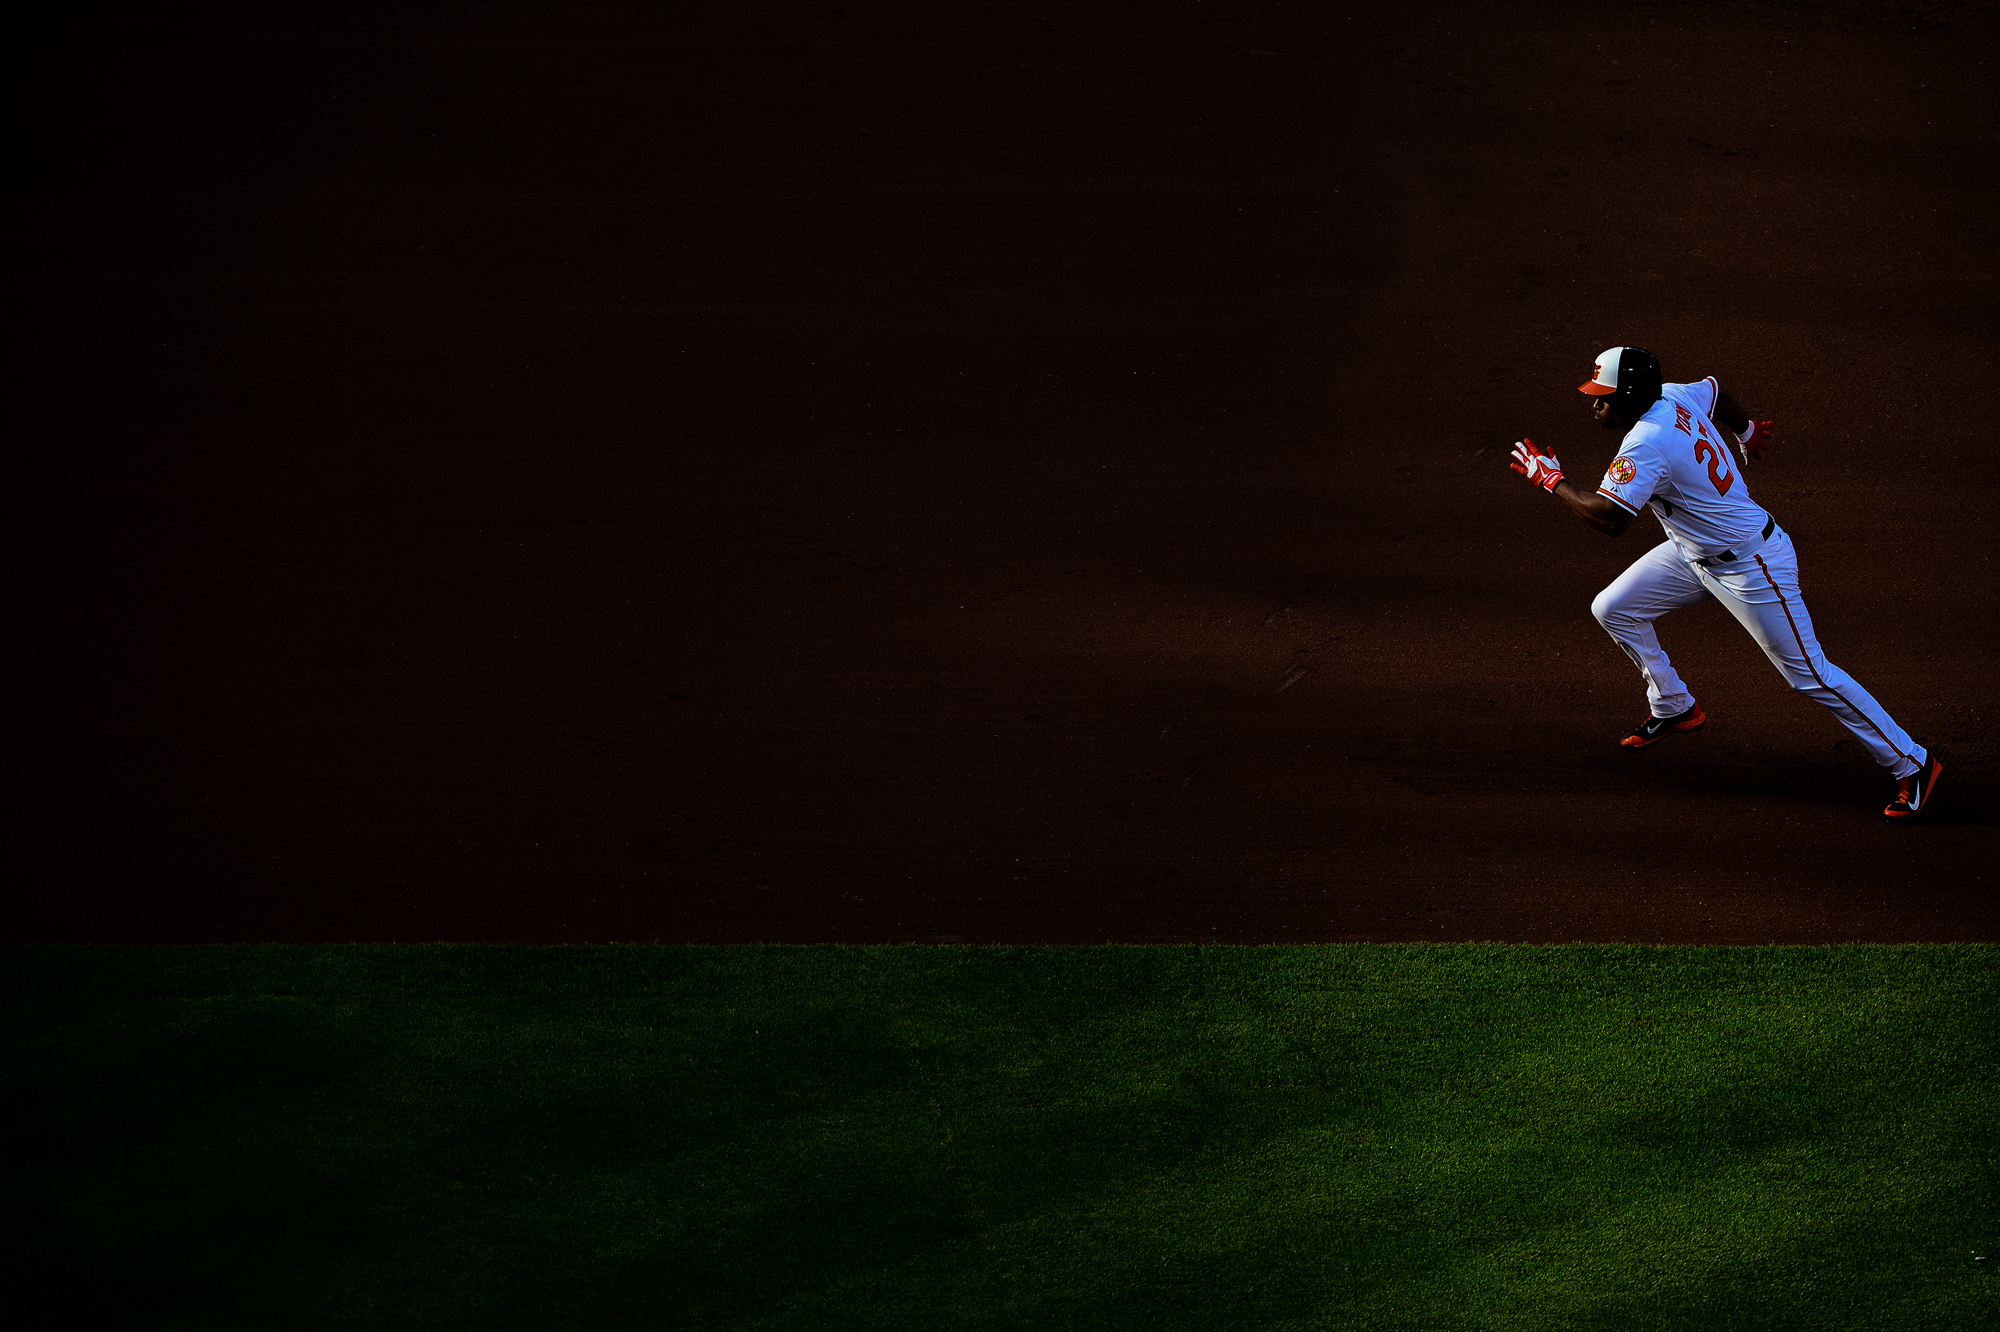 Baltimore Orioles' Delmon Young runs toward third base during a home game against the Pittsburgh Pirates at Oriole Park at Camden Yards in Baltimore, Maryland on May 1, 2014.